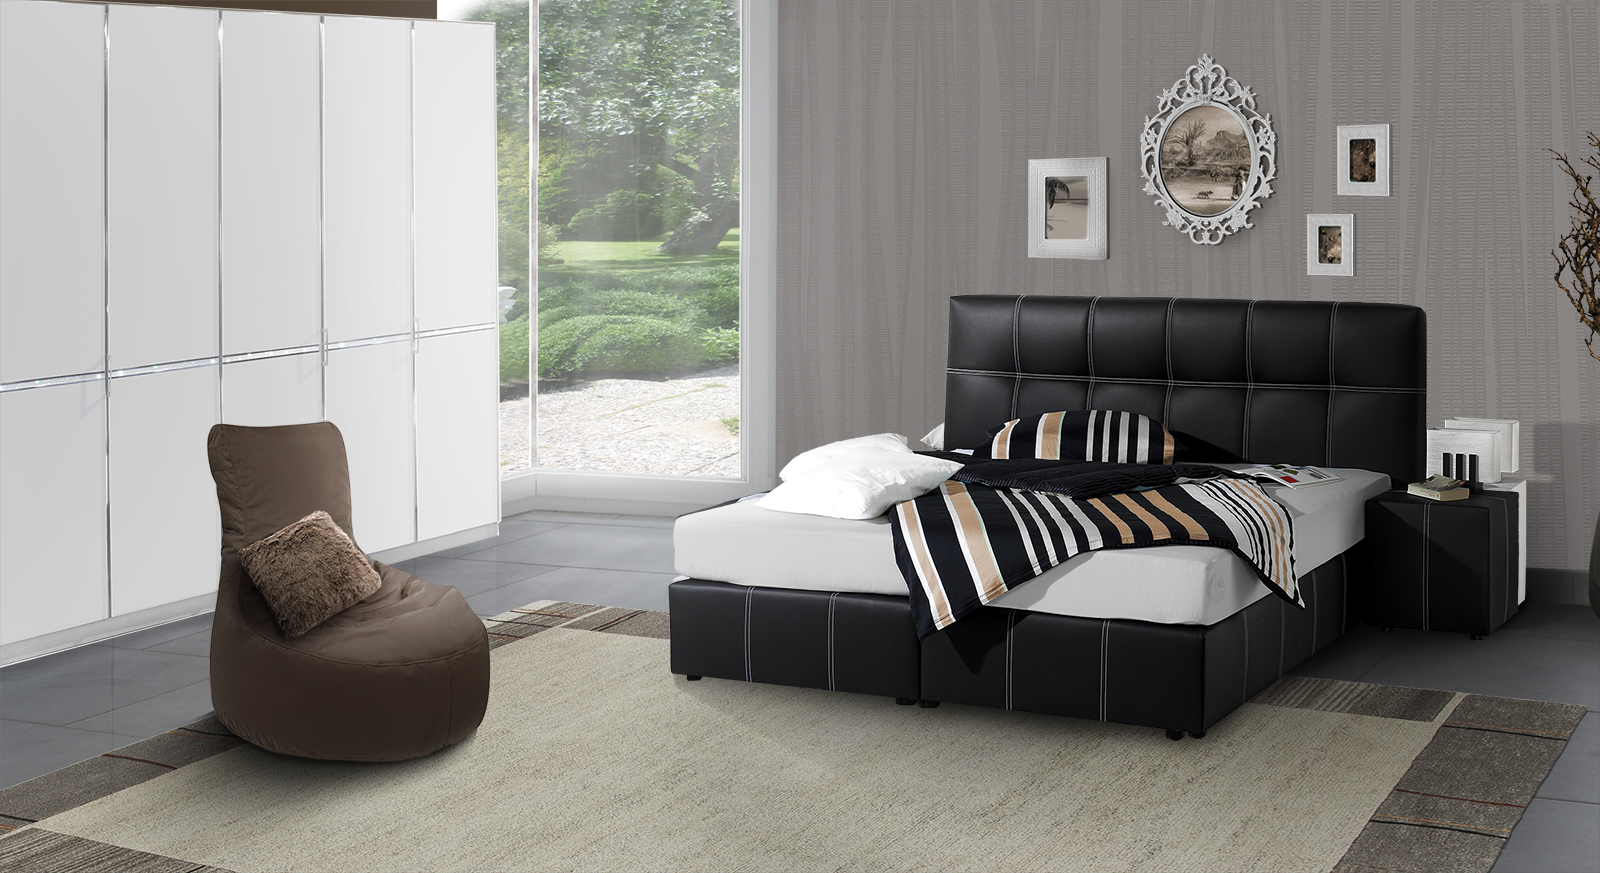 schlafzimmer boxspringbett. Black Bedroom Furniture Sets. Home Design Ideas